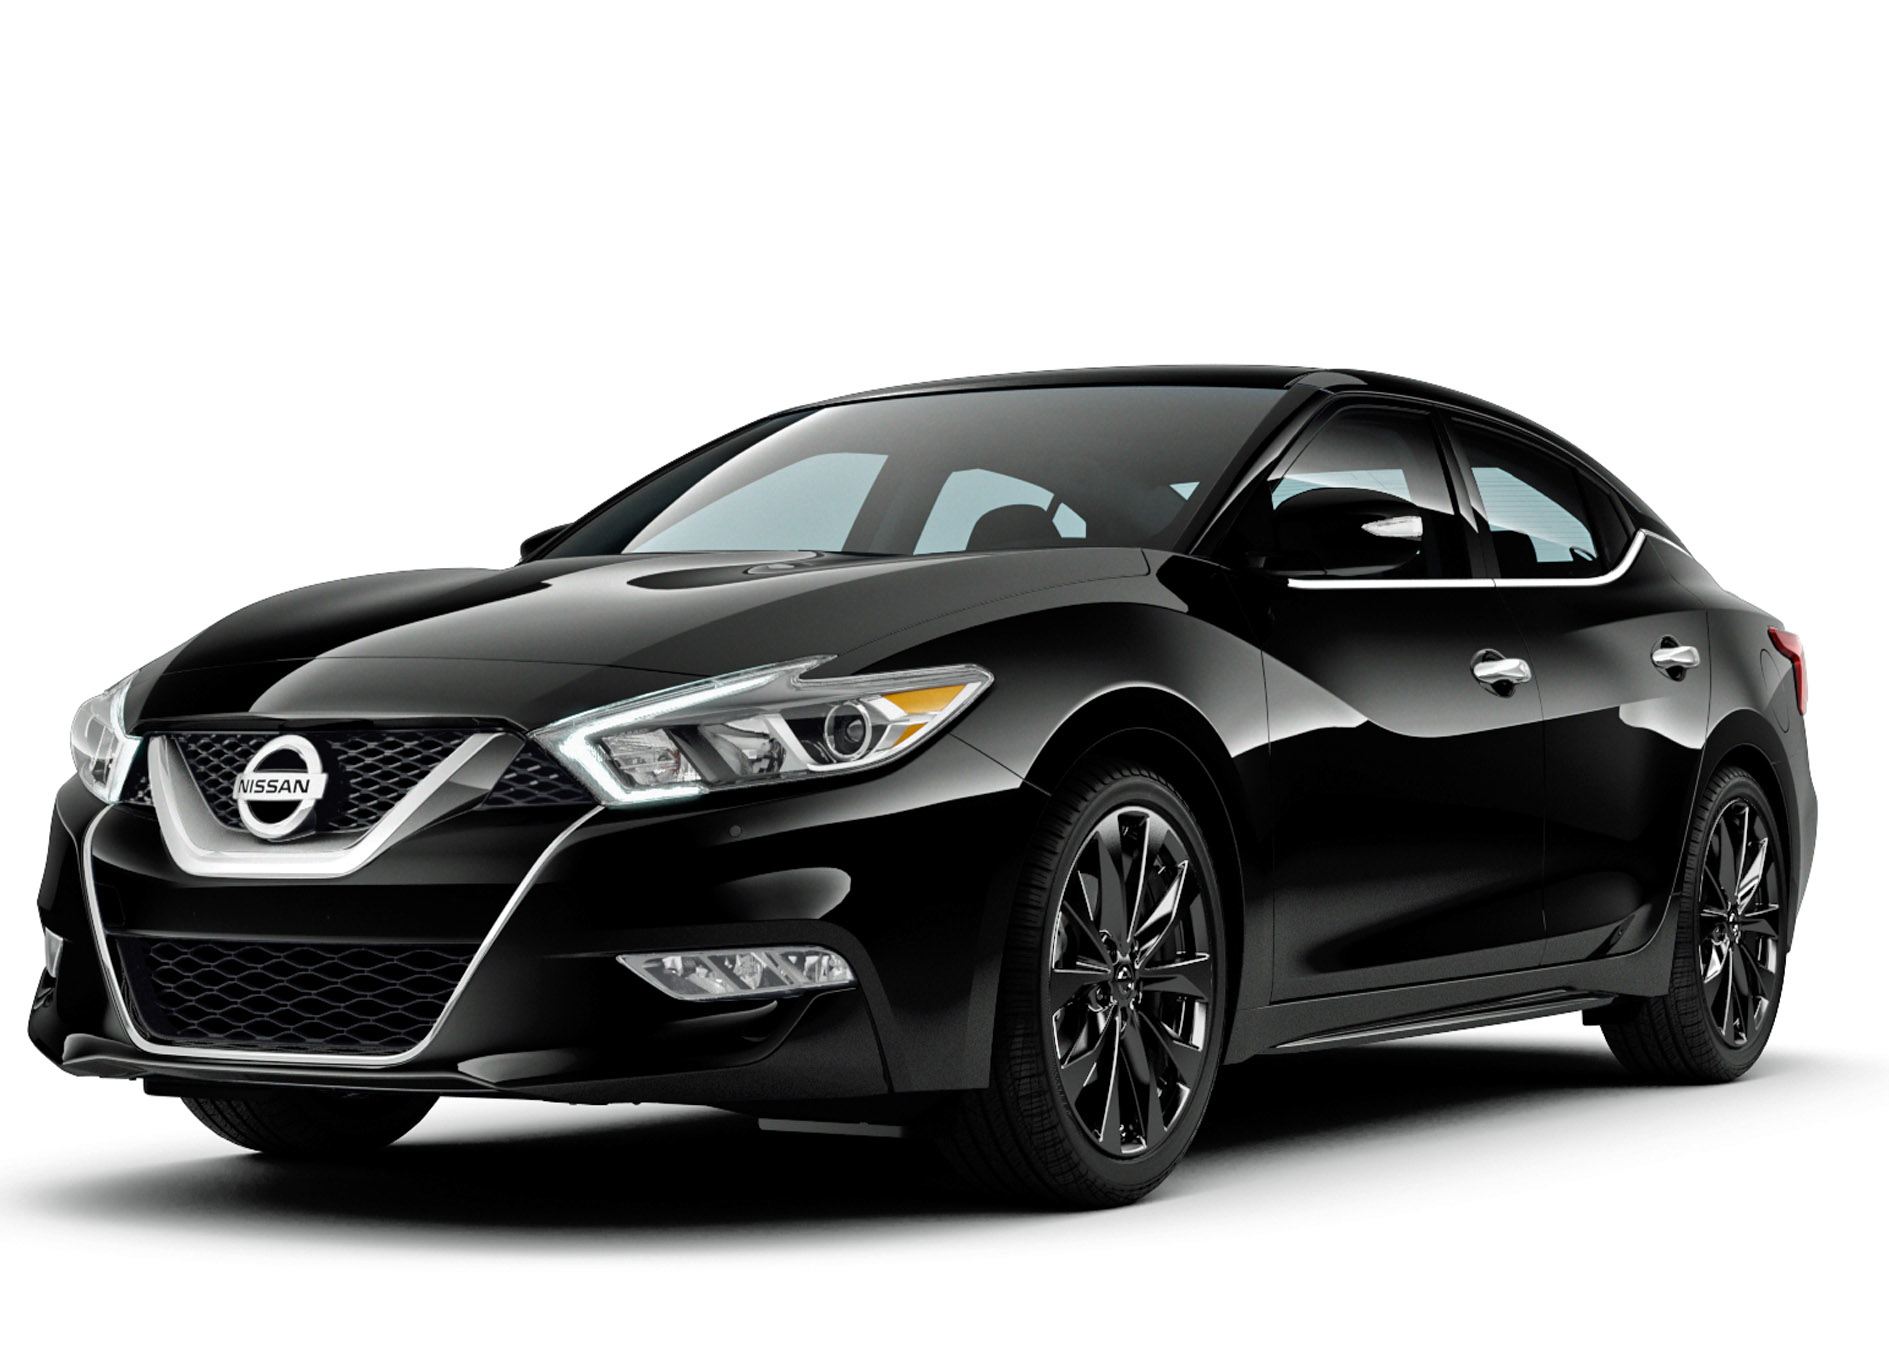 Nissan adds enhancements to Maxima sedan for 2017